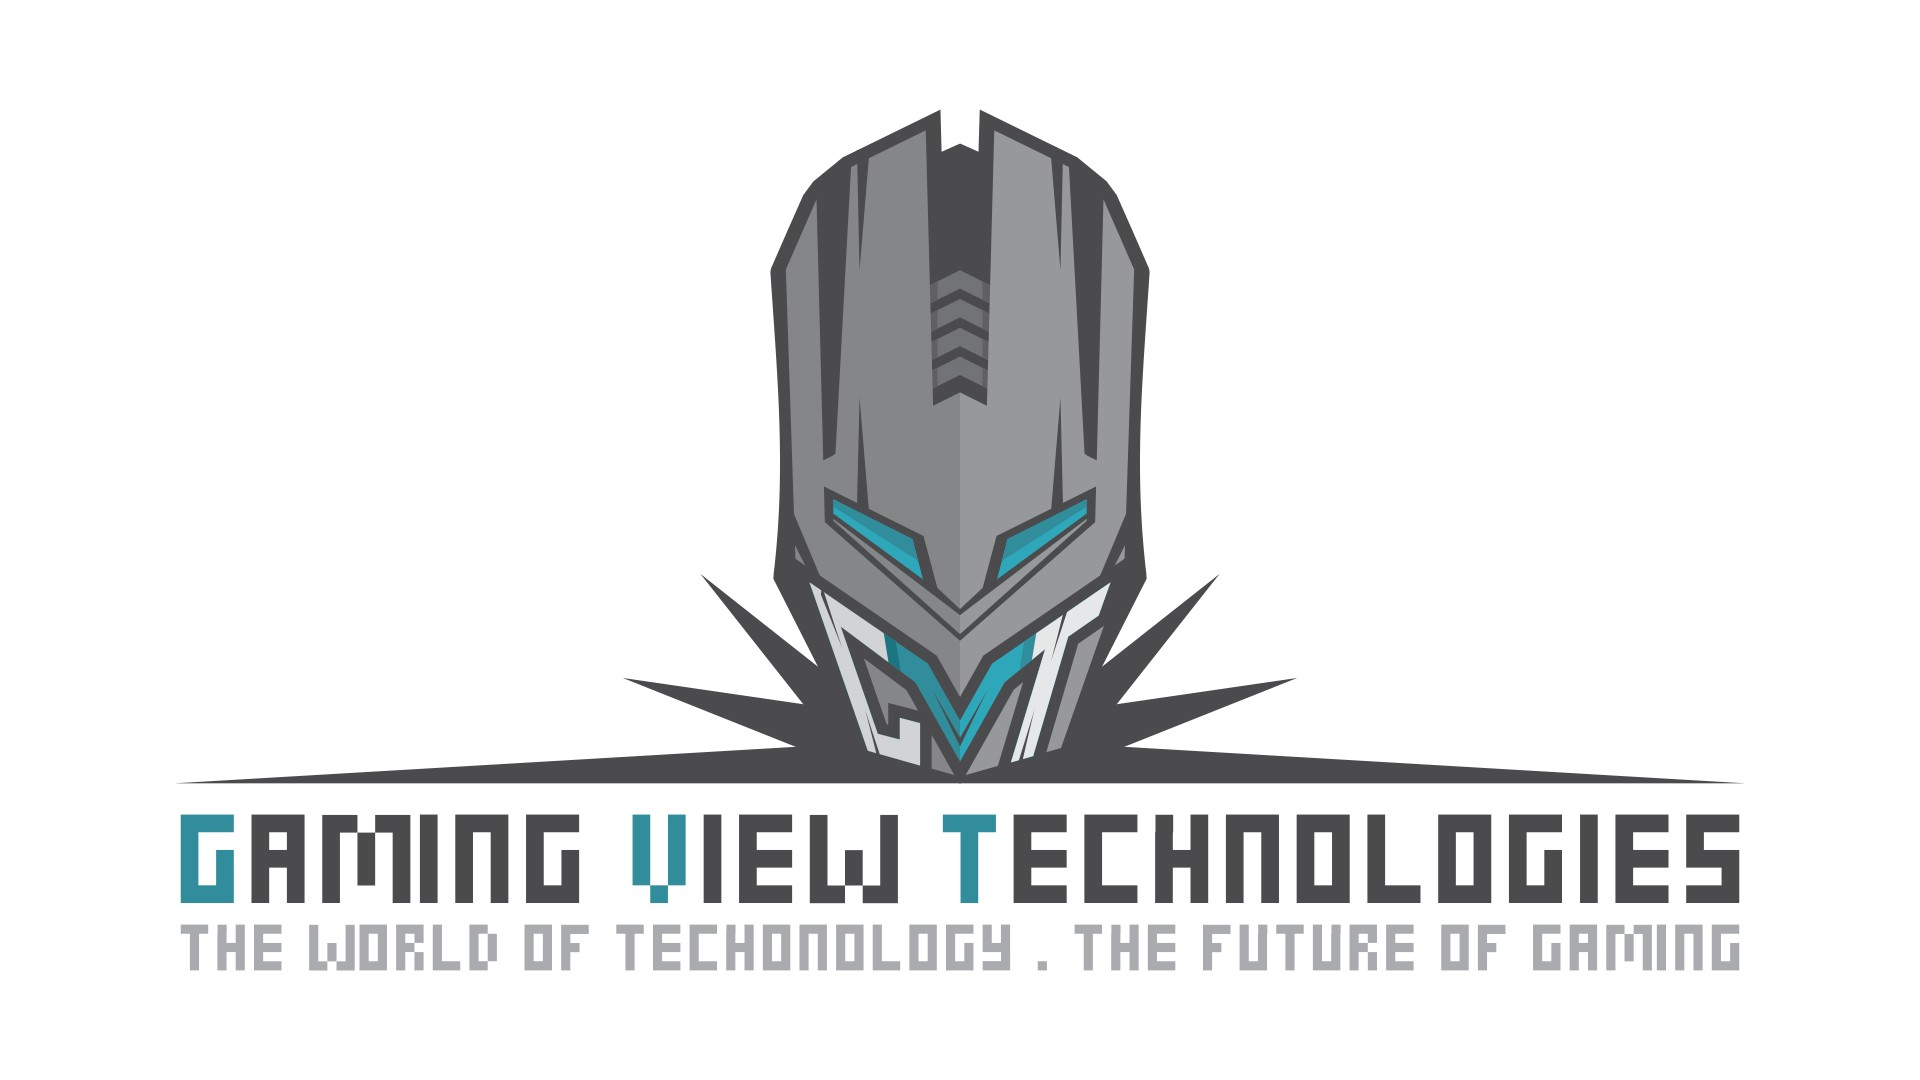 Gaming View Technologies South African Online Computer Store